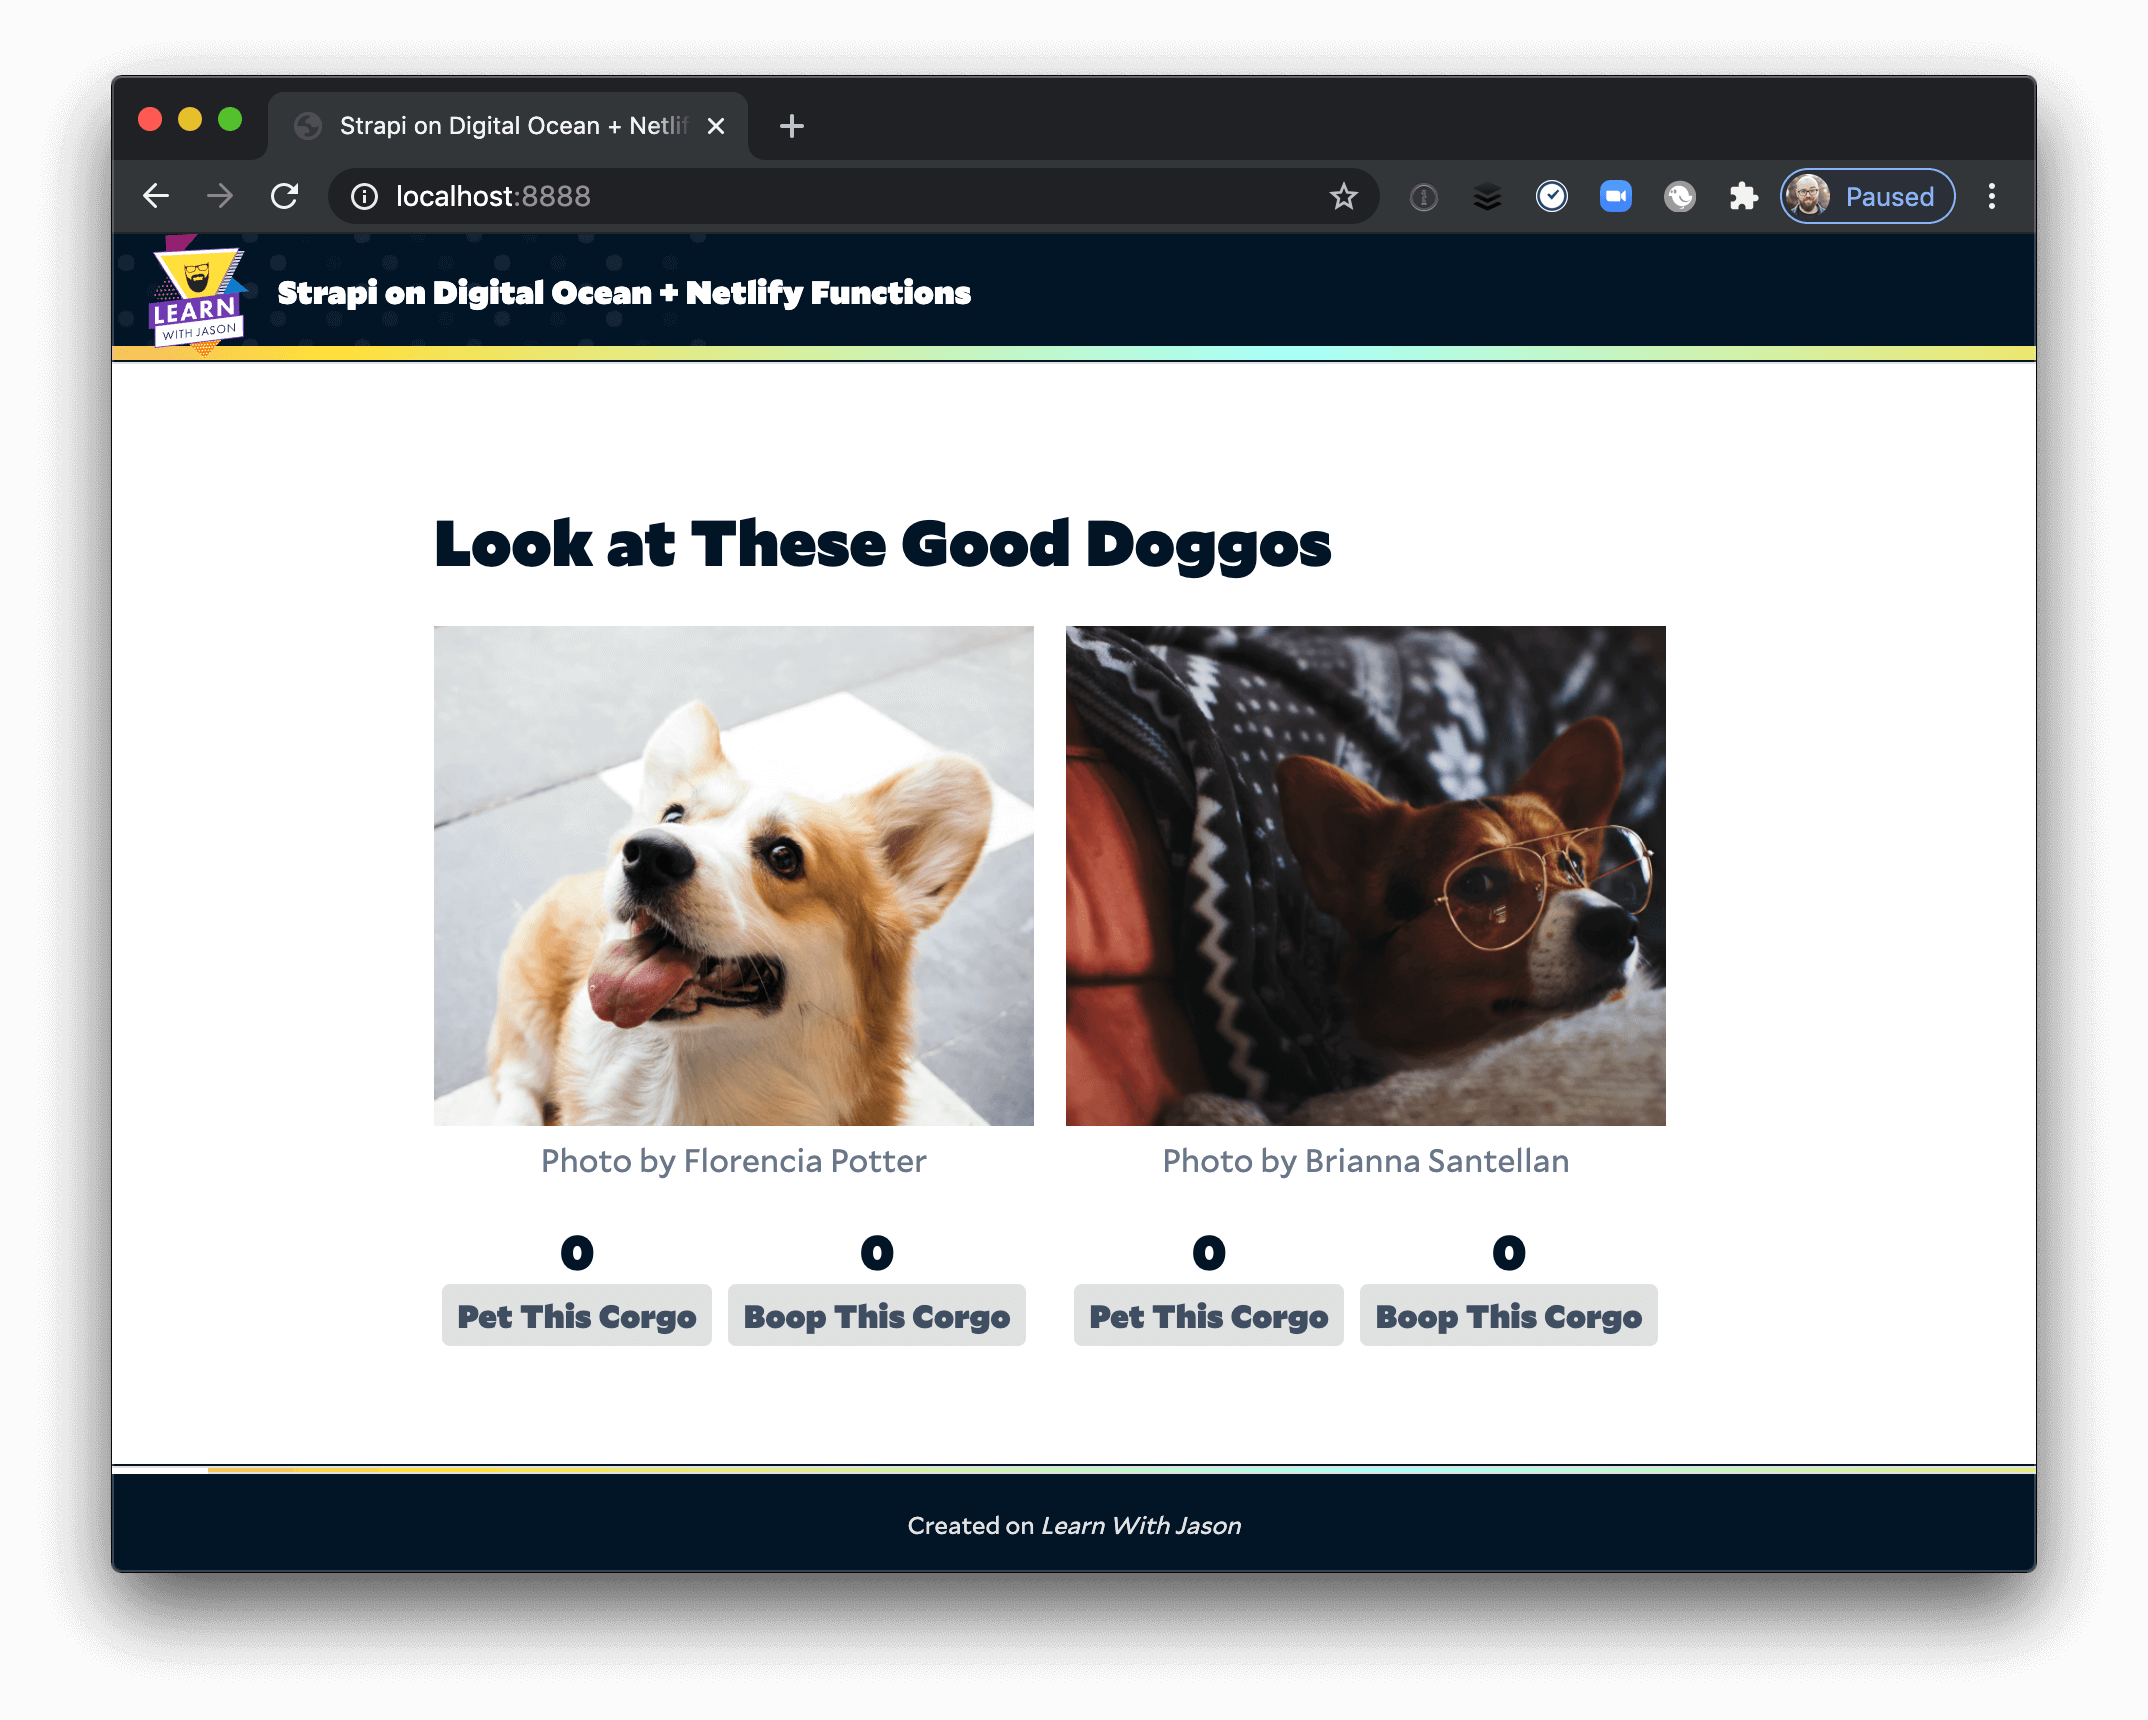 Corgi images displaying in the front-end with reaction counts and buttons.